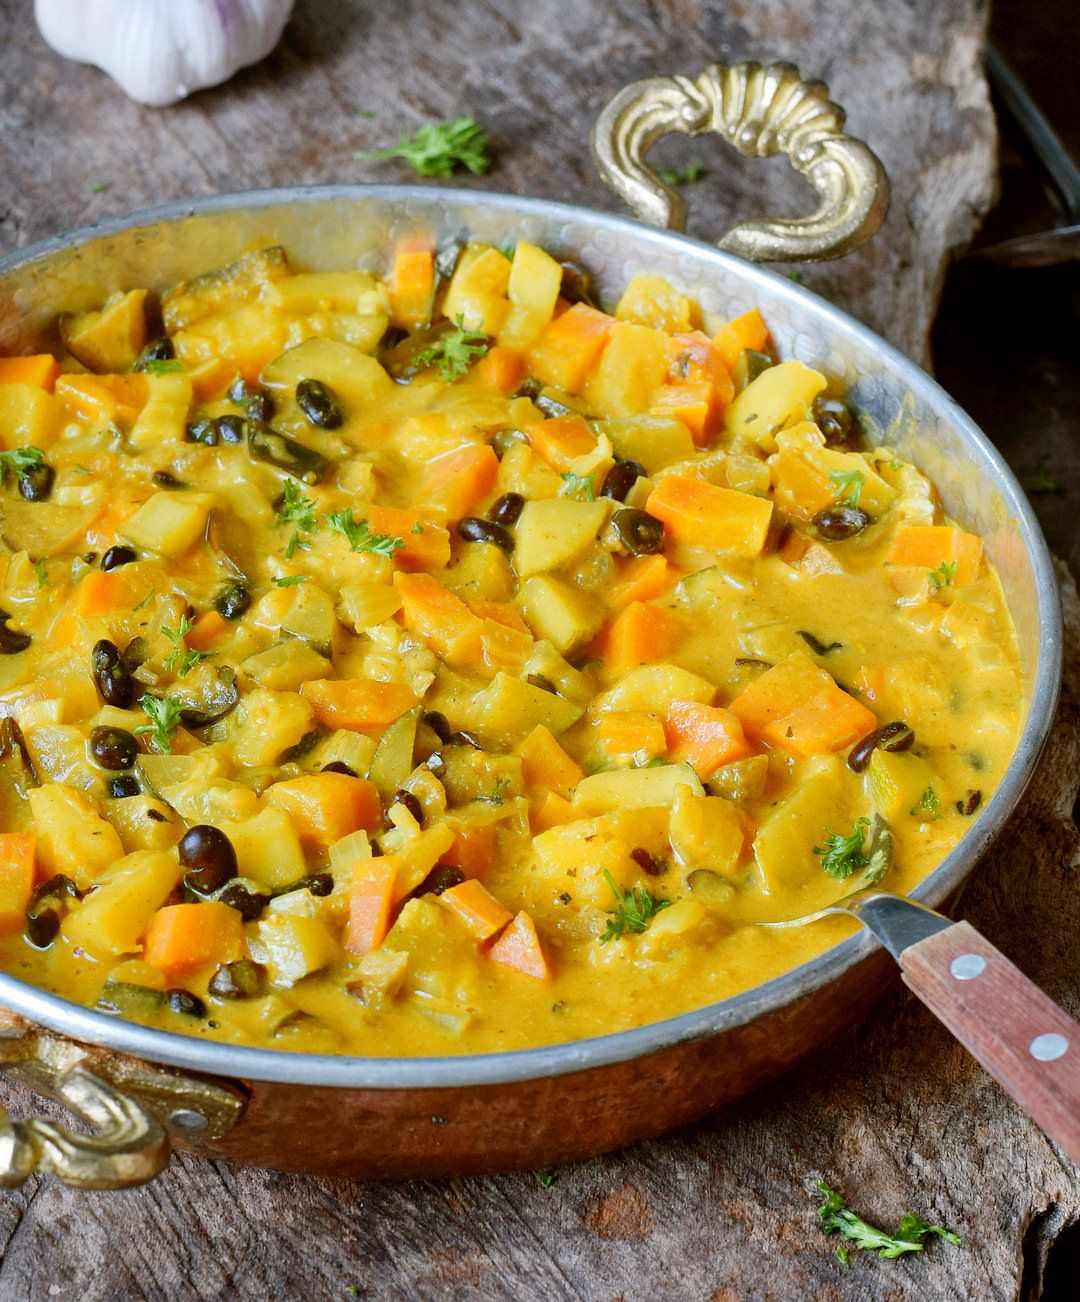 Vegetable Curry Recipe With Coconut Milk Pineapple And Chickpeas Or Beans This Healthy Comfort Vegetable Curry Recipes Curry Recipes Easy Vegetable Curry